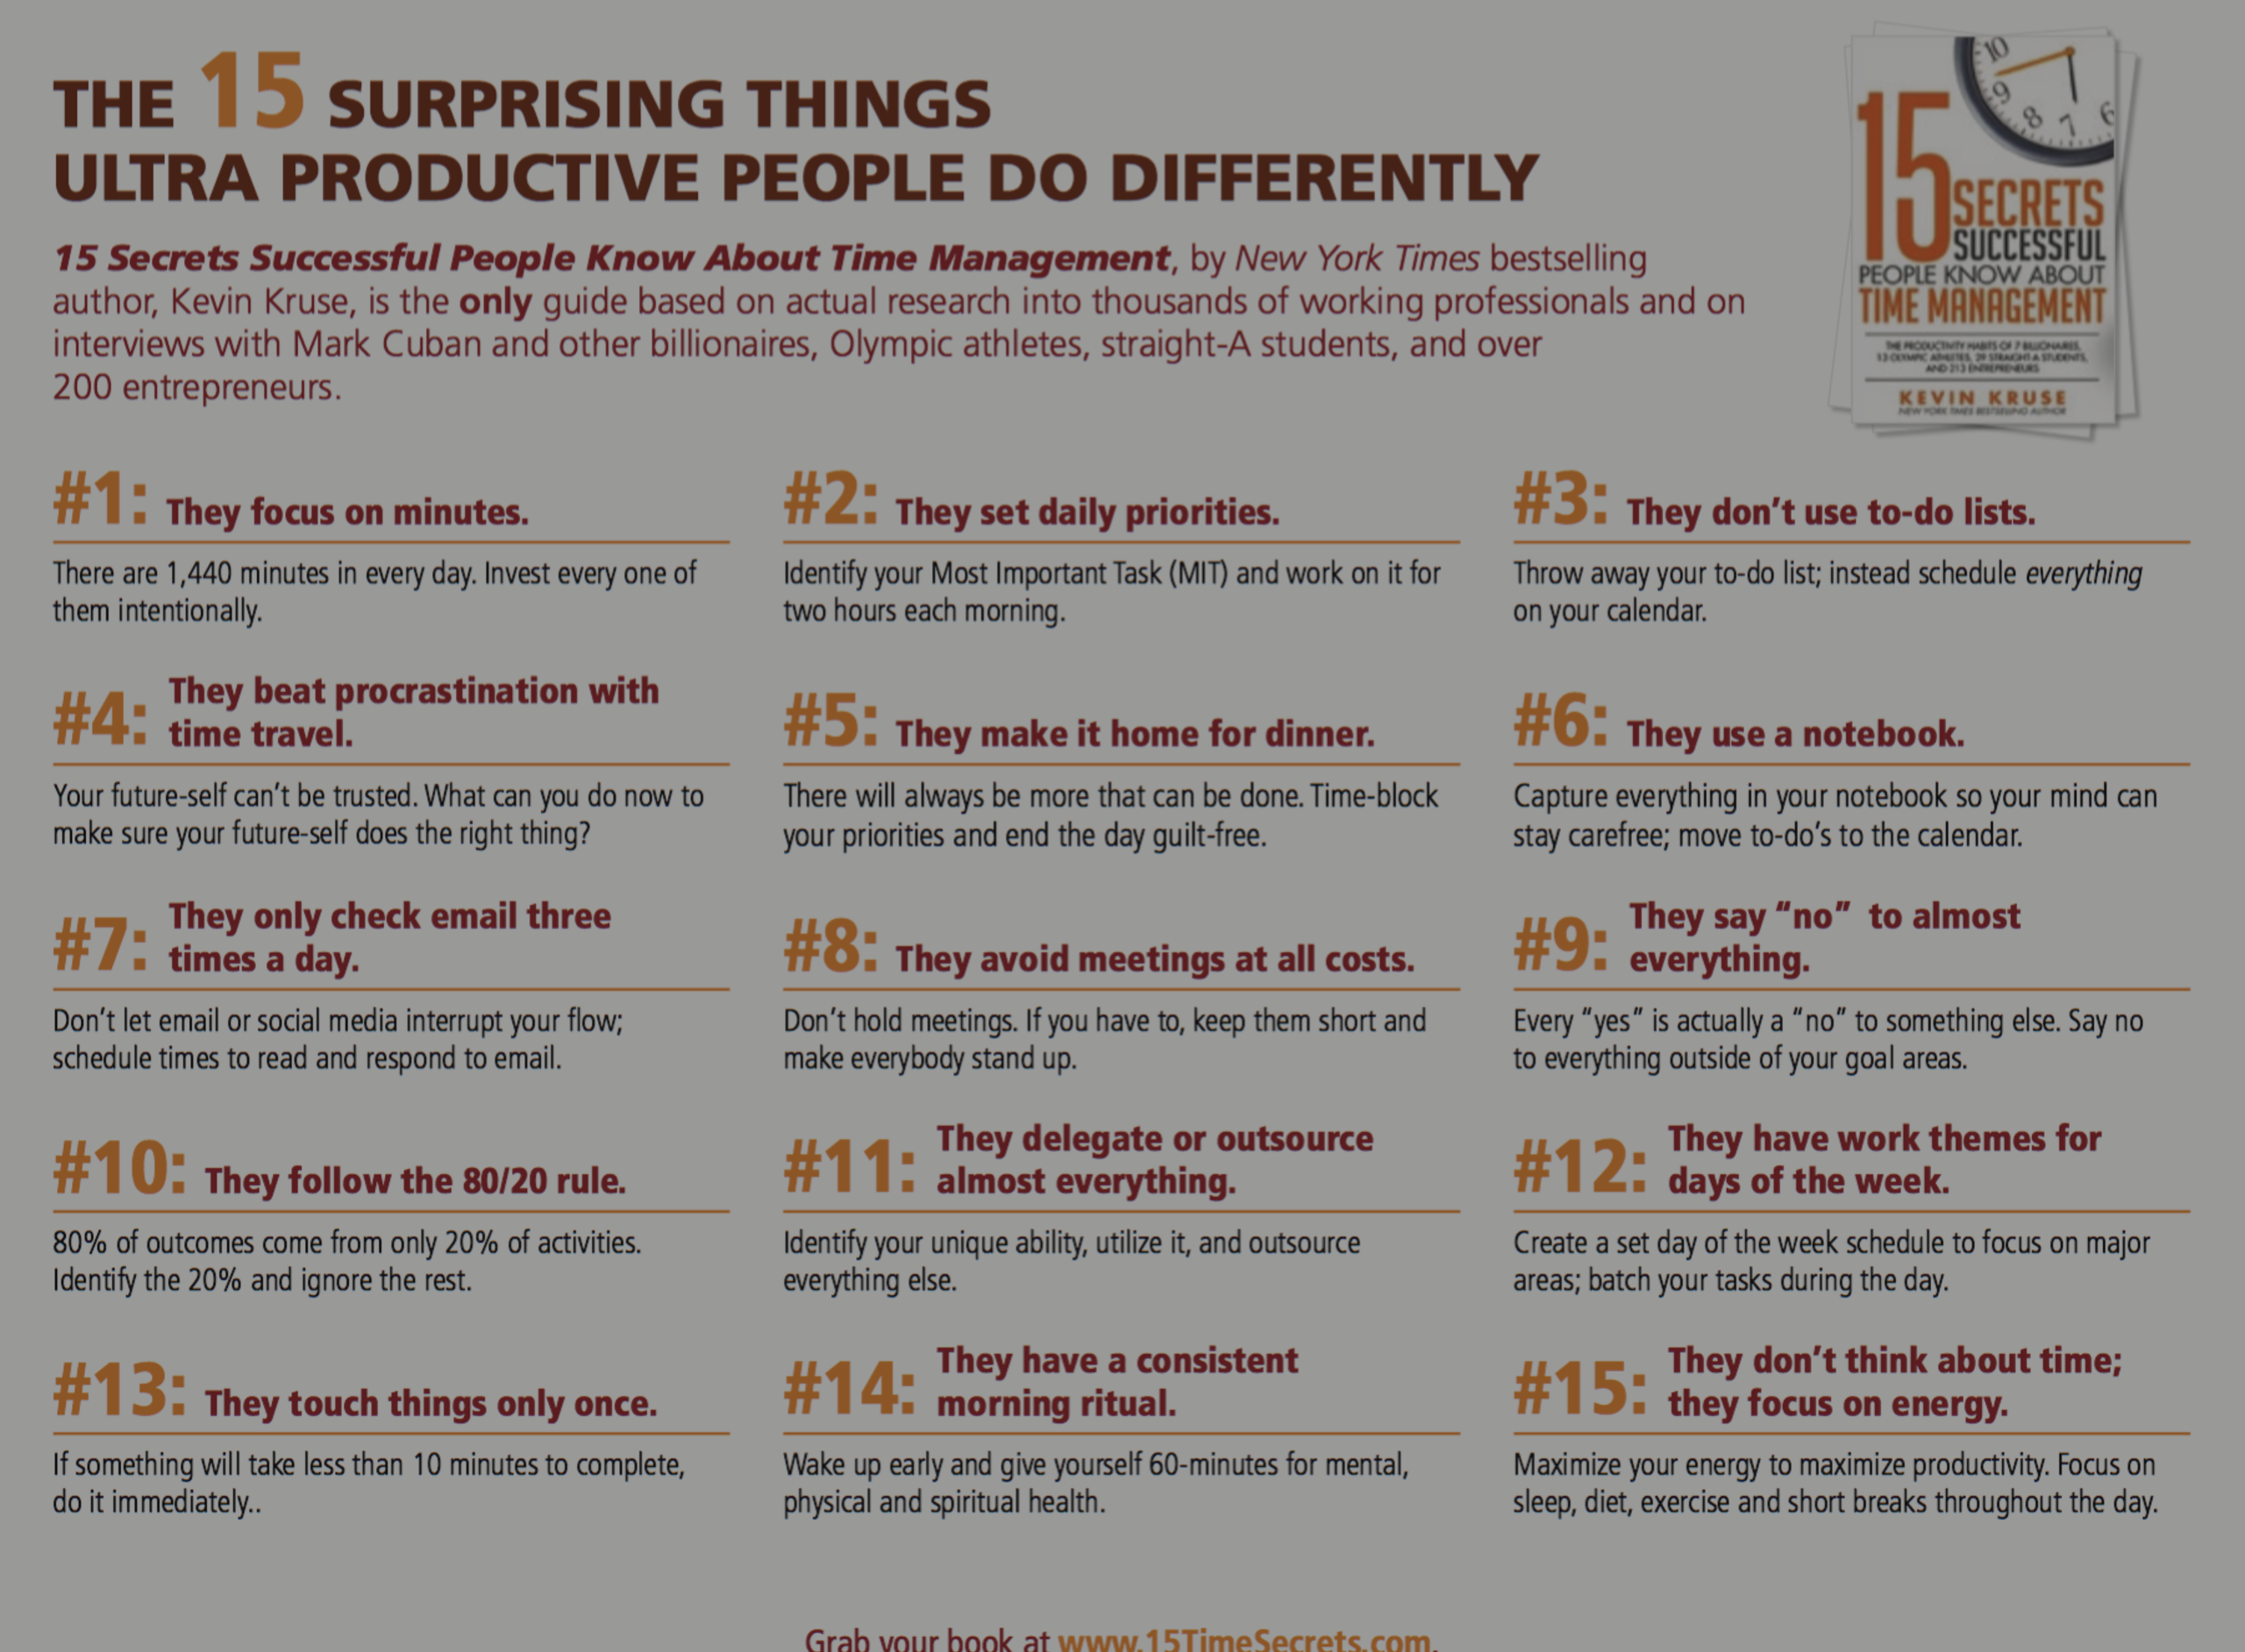 15 Surprising Things Productive People Do Differently